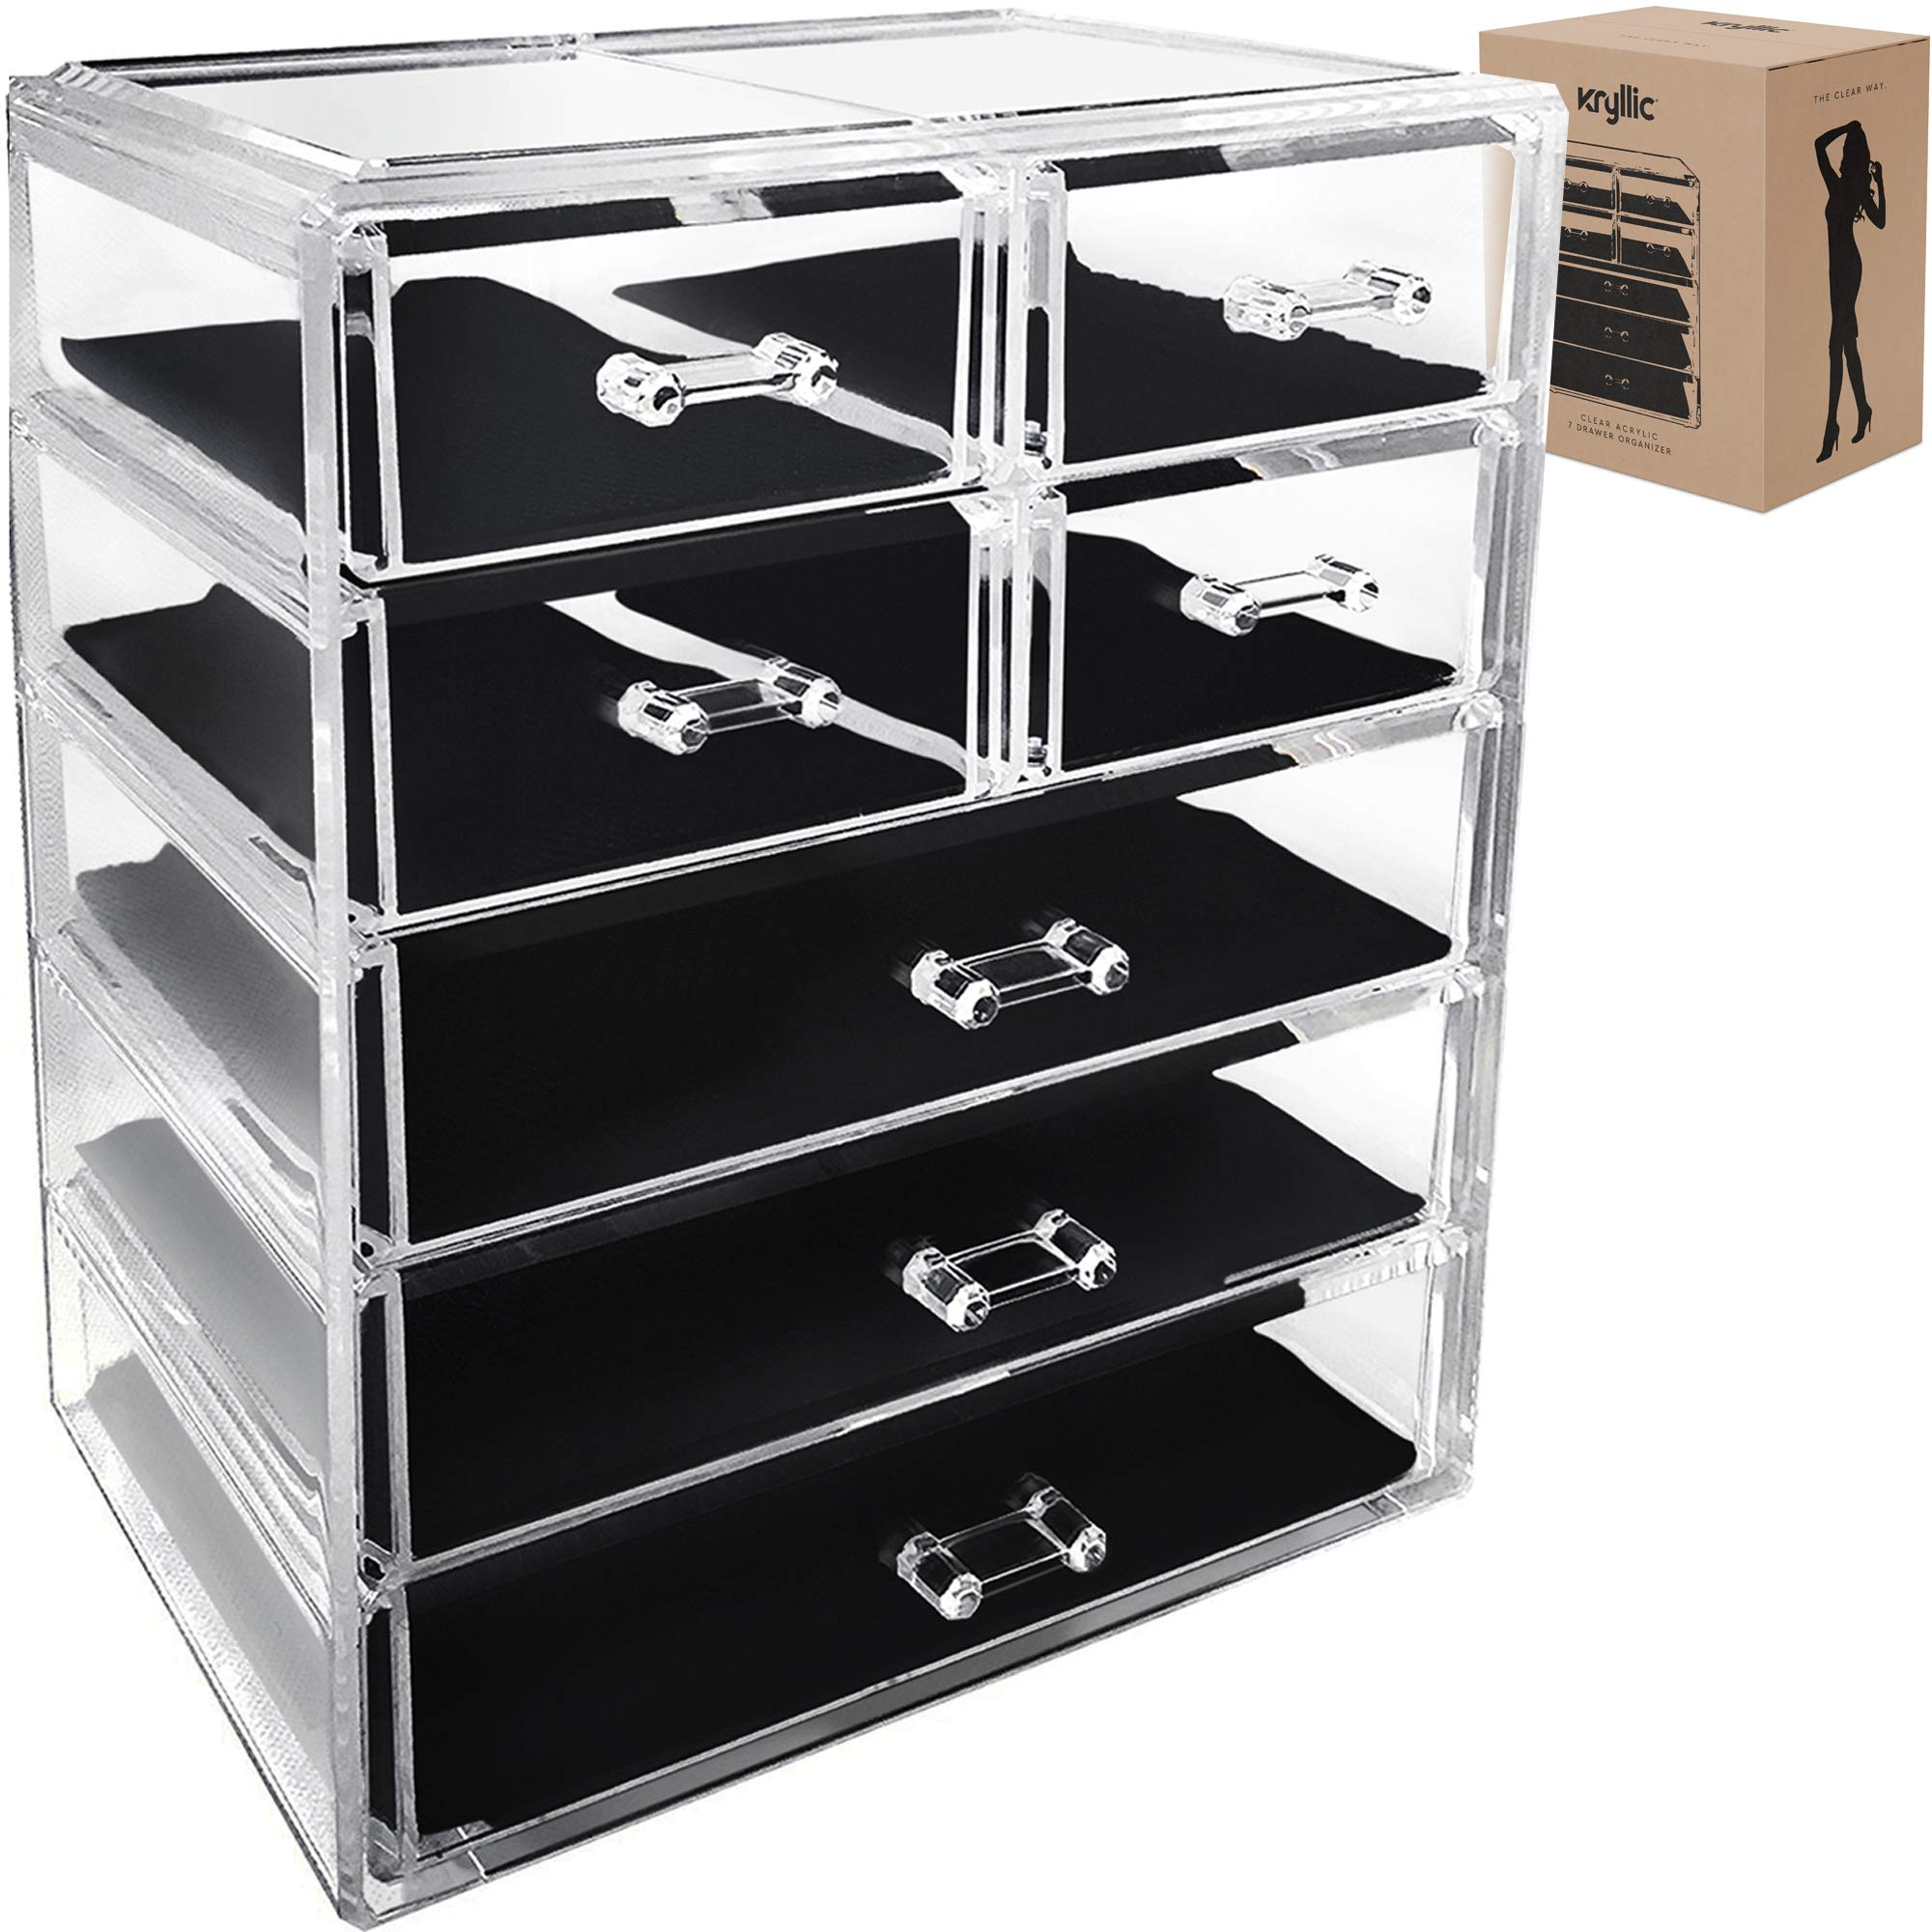 Acrylic Cosmetic Makeup Jewelry Organizer - Large 7 drawer make up holder for brush cream lipstick palette! Countertop beauty makeup organization box ideal storage for any bathroom or bedroom table!